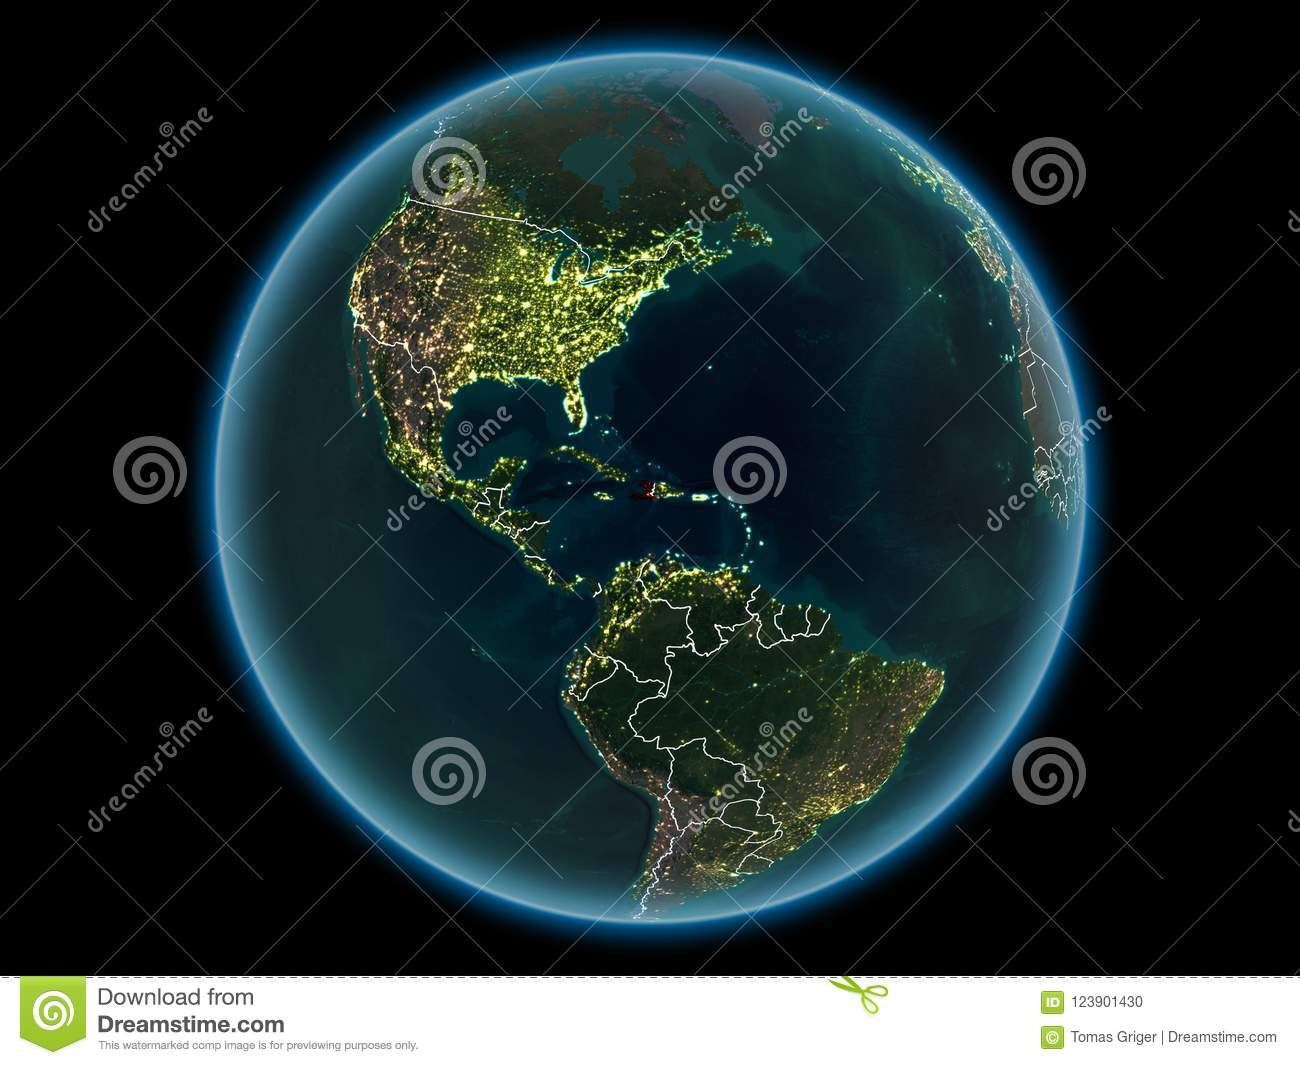 Haiti on planet earth from space at night stock photo image of download haiti on planet earth from space at night stock photo image of international gumiabroncs Image collections